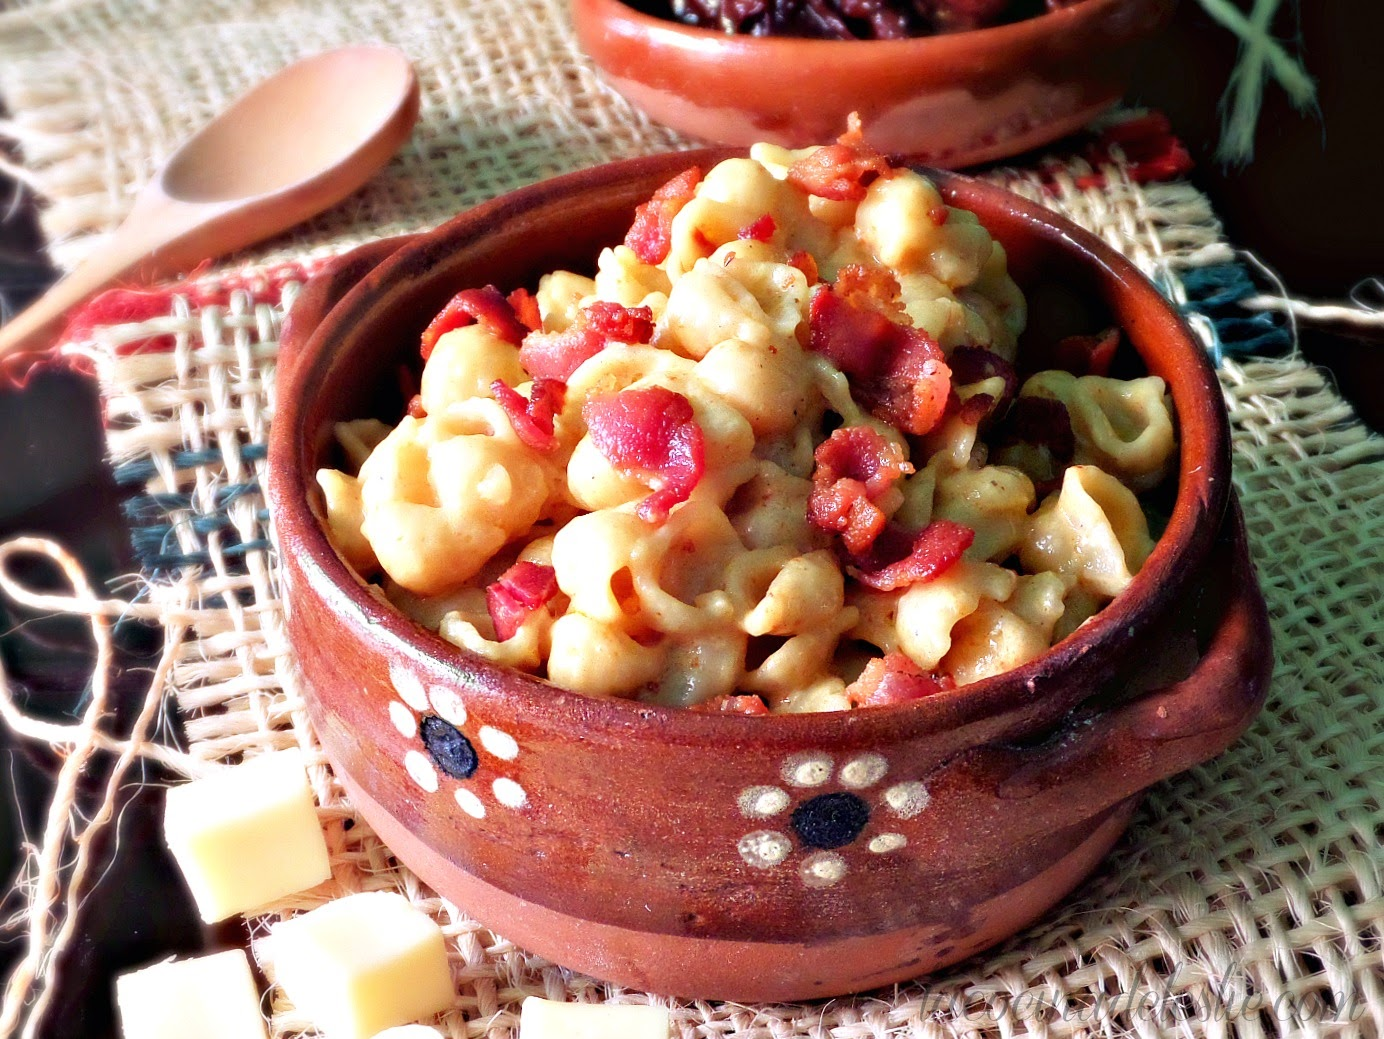 Homemade Macaroni & Cheese with Bacon and Chipotle - lacocinadeleslie.com